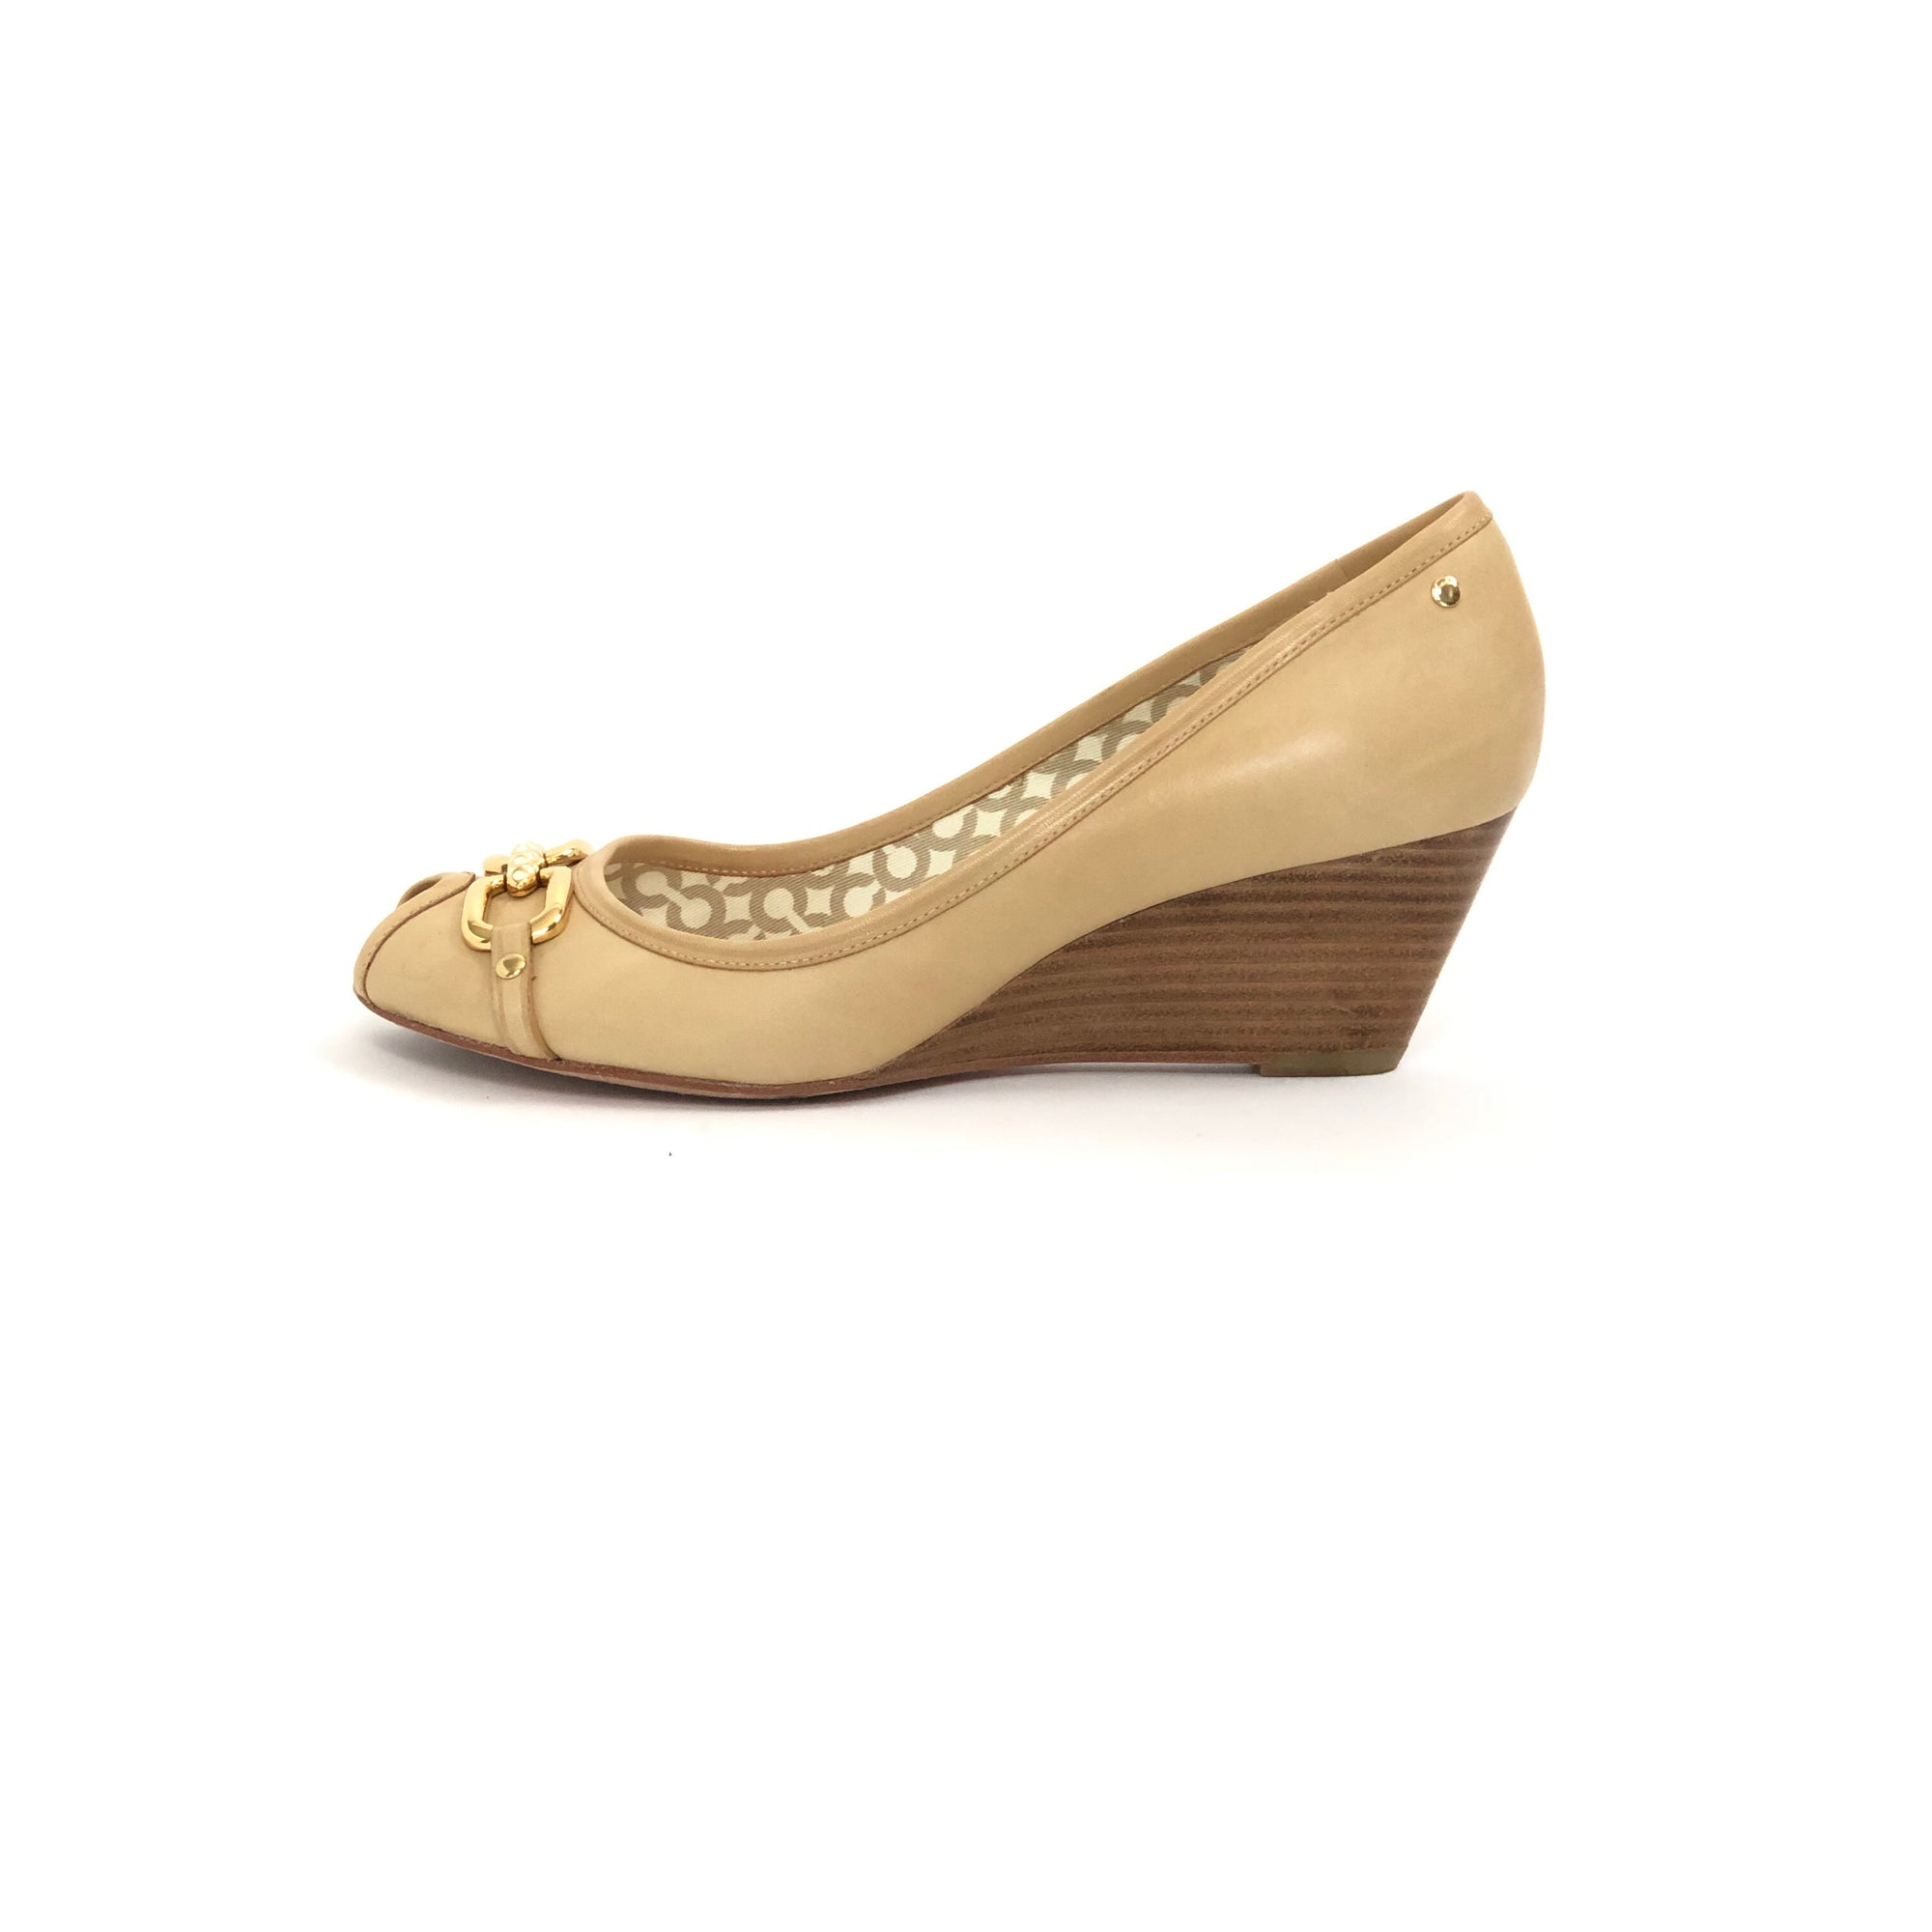 Coach Shelby Peep Toe Wedge Nude, Size 7